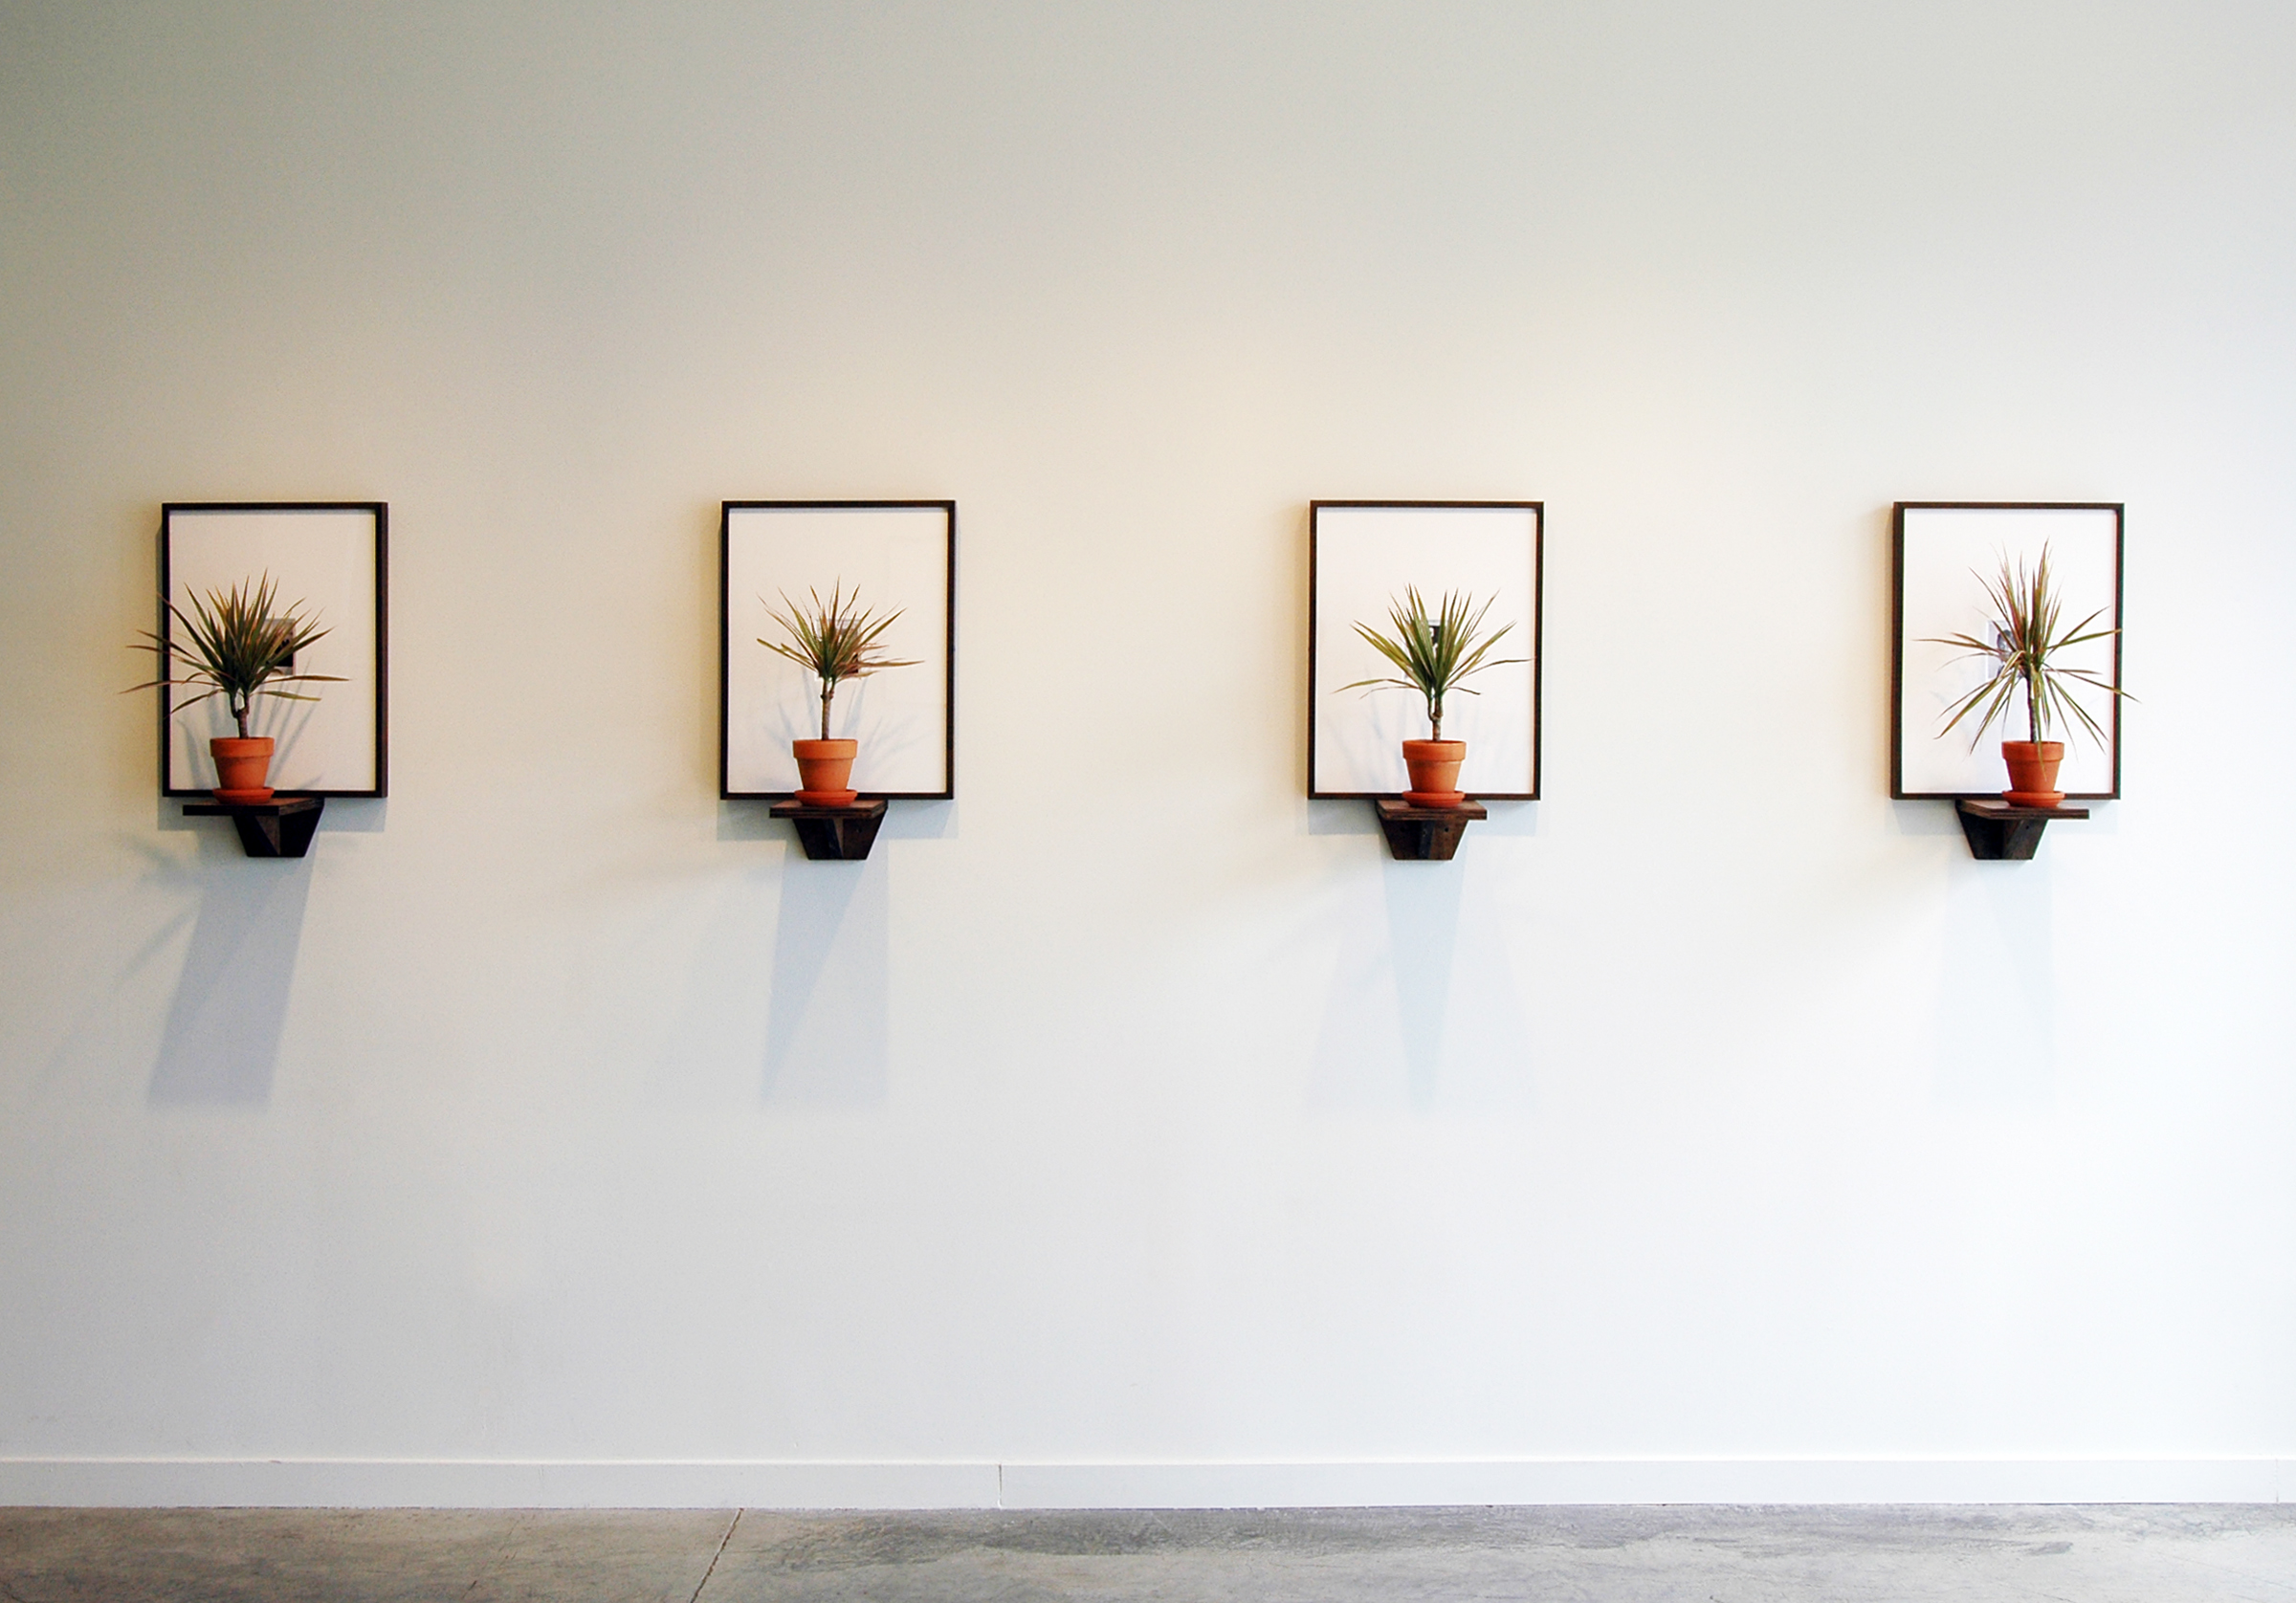 NOTHING IN PARTICULAR  JOSHUA PIEPER MARCH 30 - APRIL 28, 2012